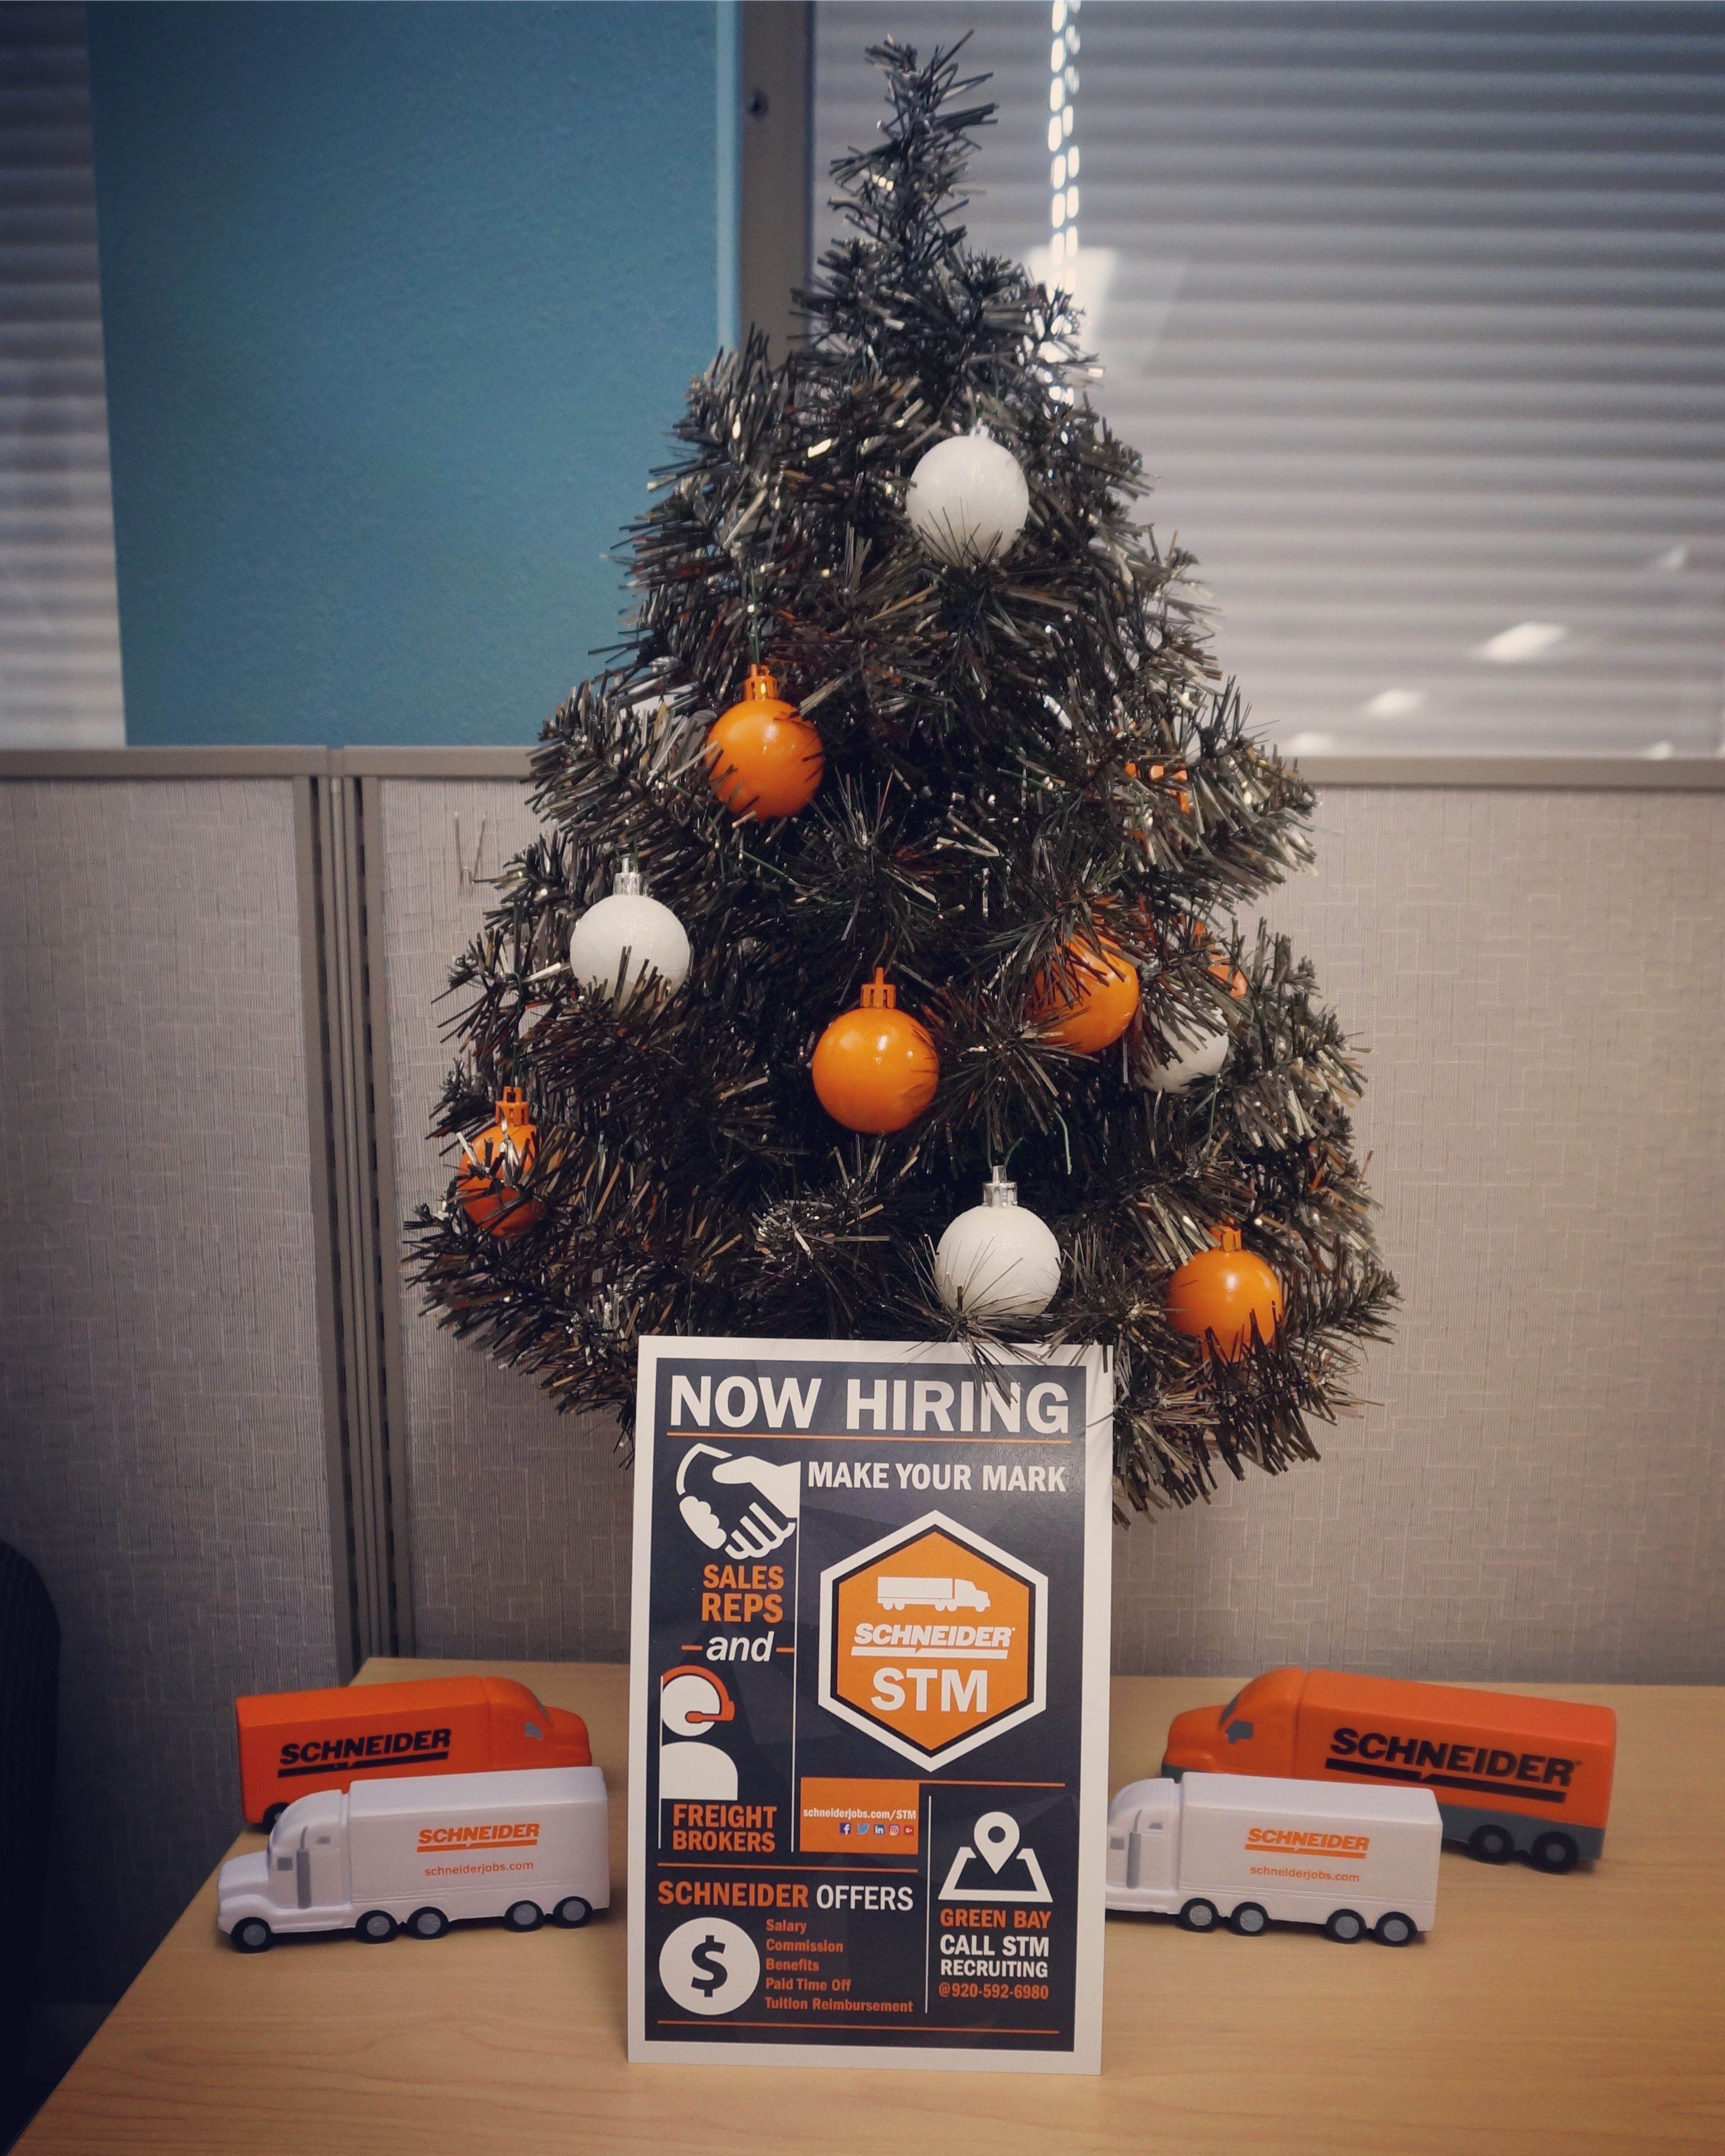 Schneider Transportation Management Careers Office Job Holiday Decor Christmas Tree